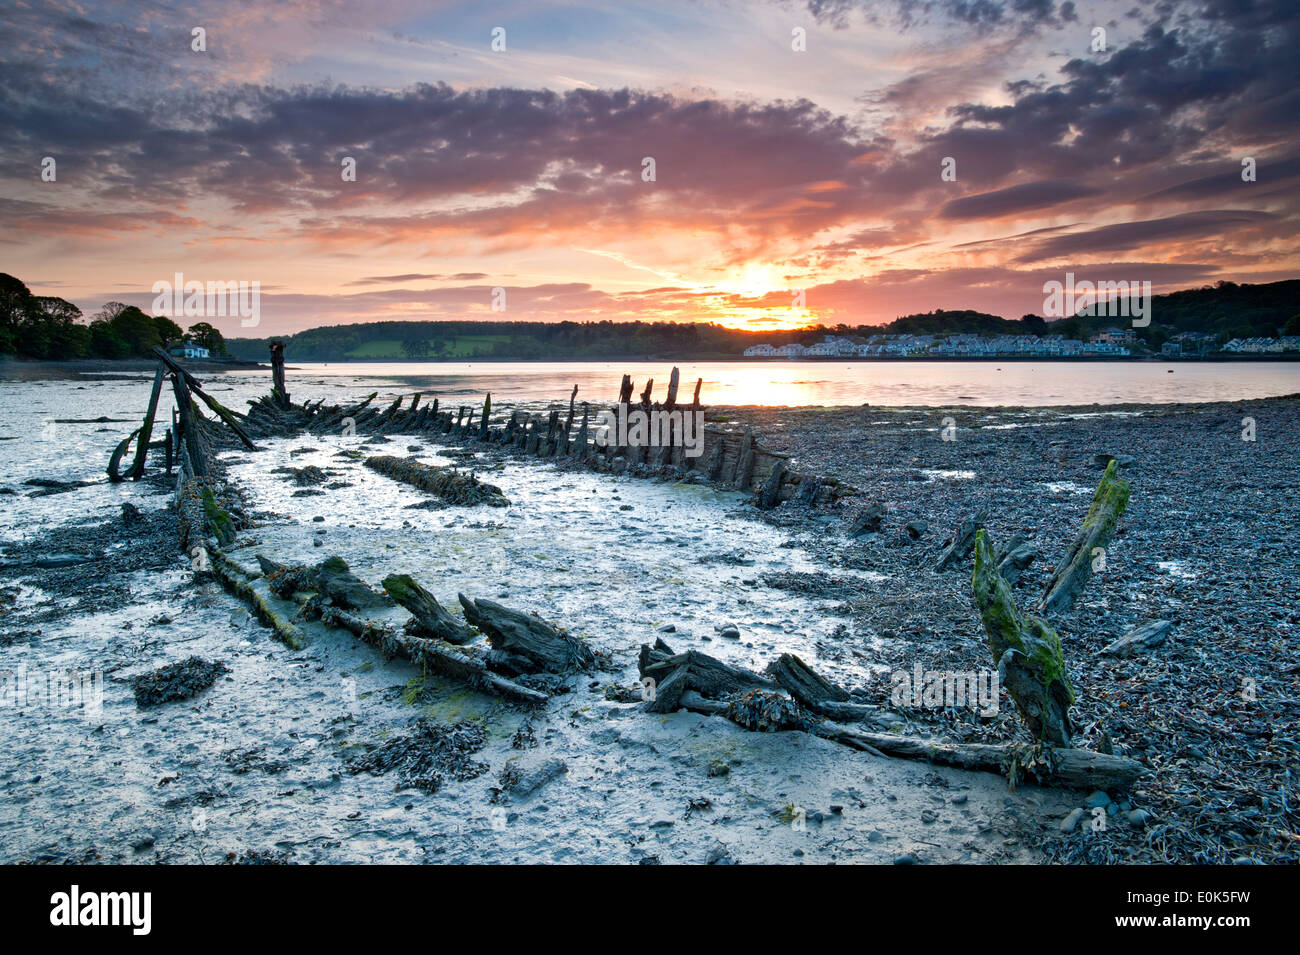 Wreck of The Seven Sisters and the Menai Straits at Dawn, Moel y don, Anglesey, North Wales, UK - Stock Image